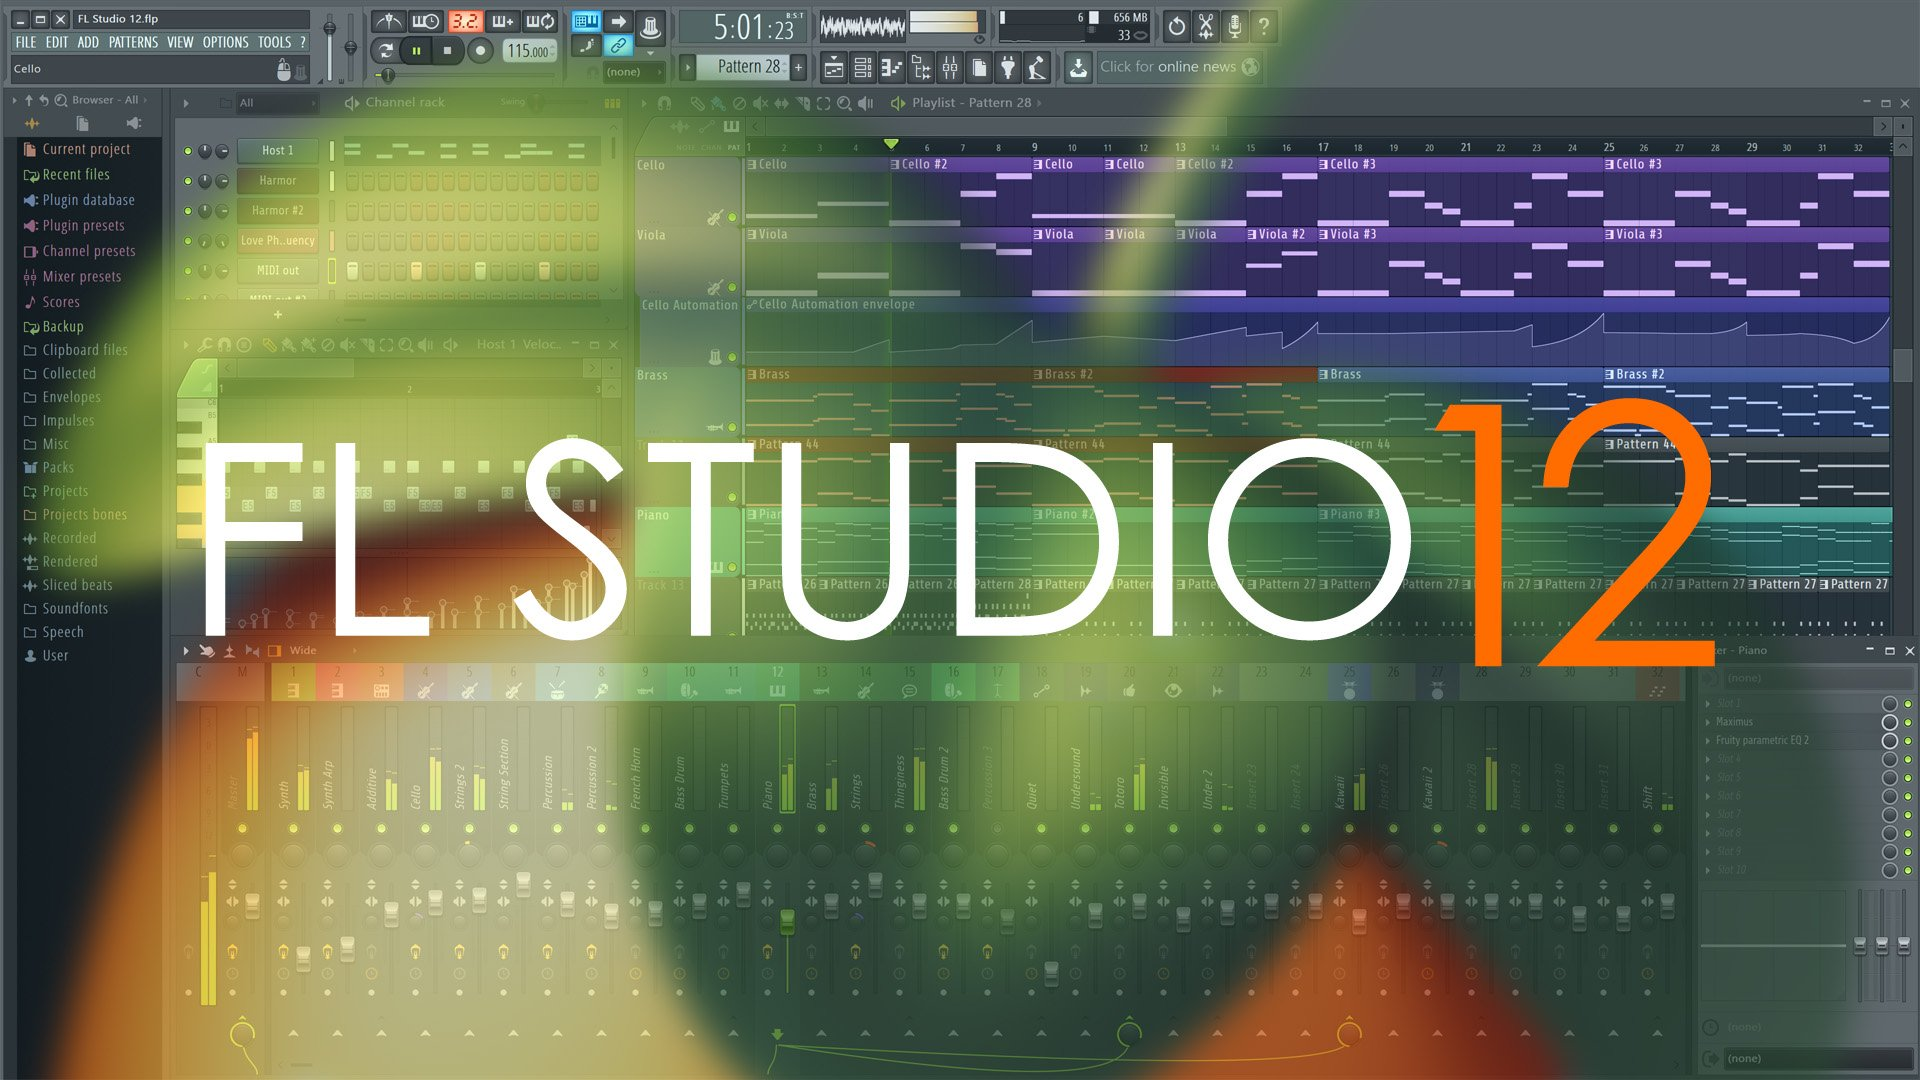 Image Line FL Studio Fruity Edition by Image-Line (Image #7)